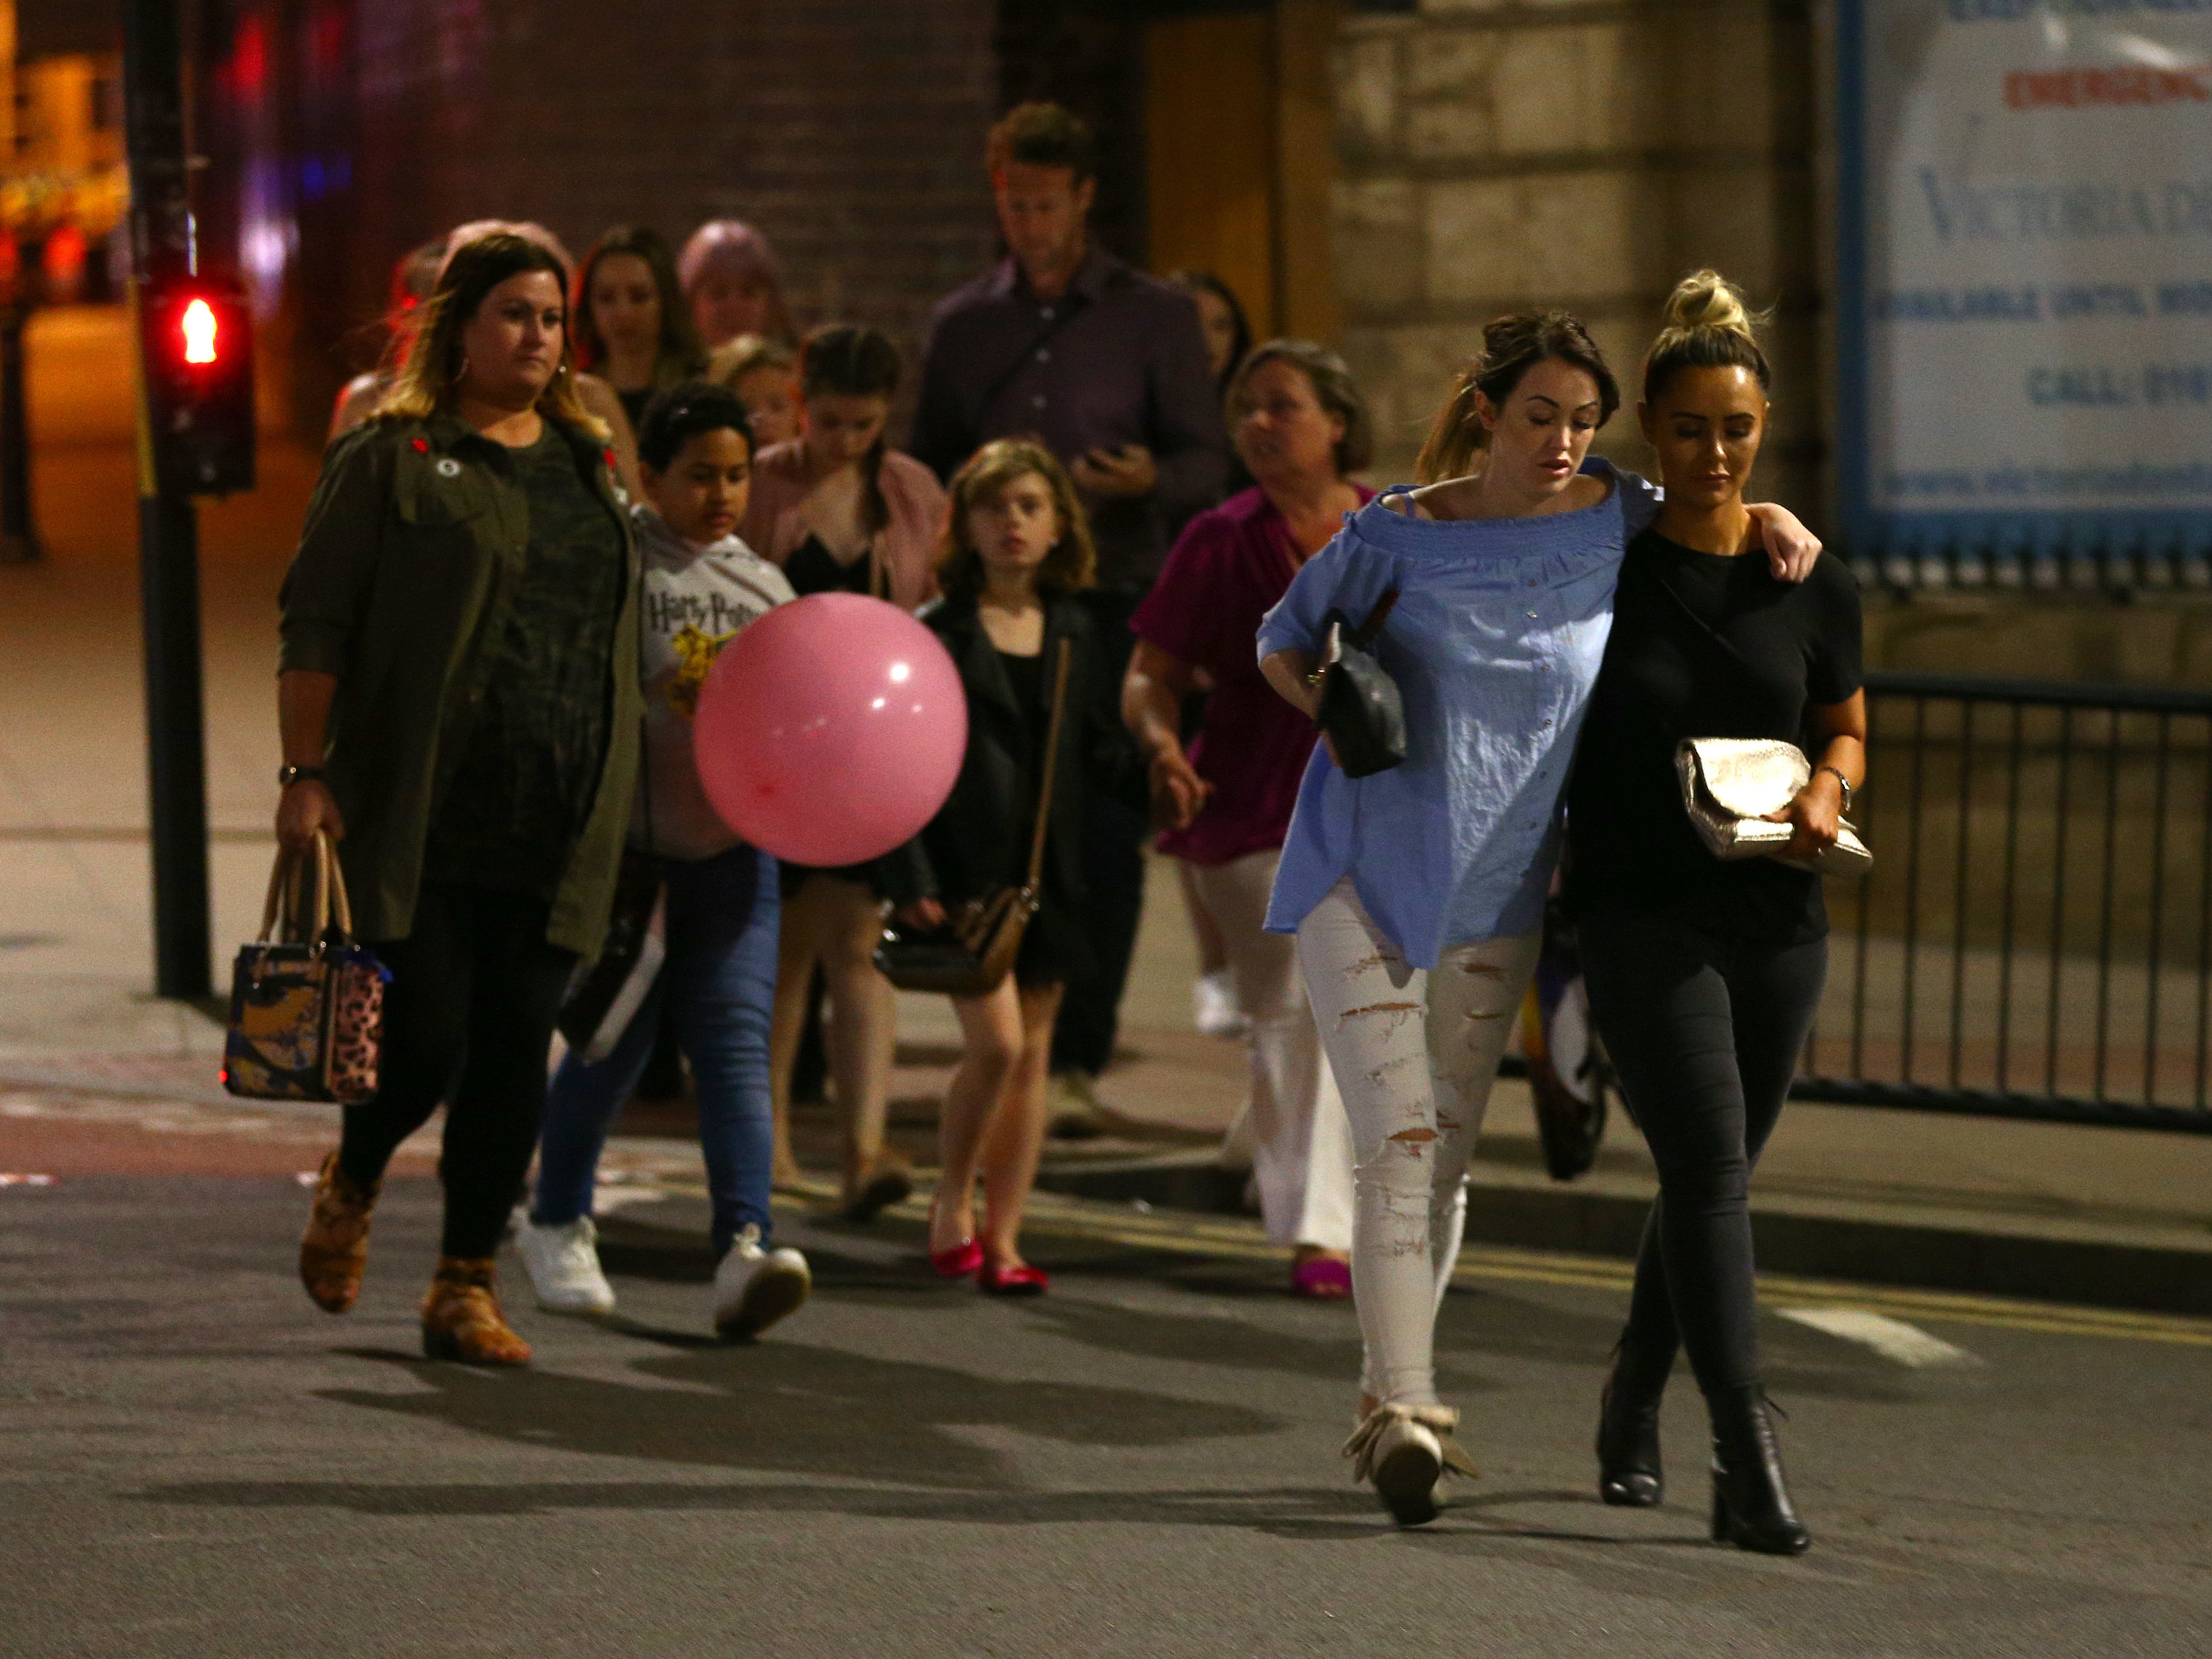 People leave Manchester Arena in England on Monday night following an explosion that killed at least 22 victims and wounded dozens more.     (Dave Thompson/Getty Images)